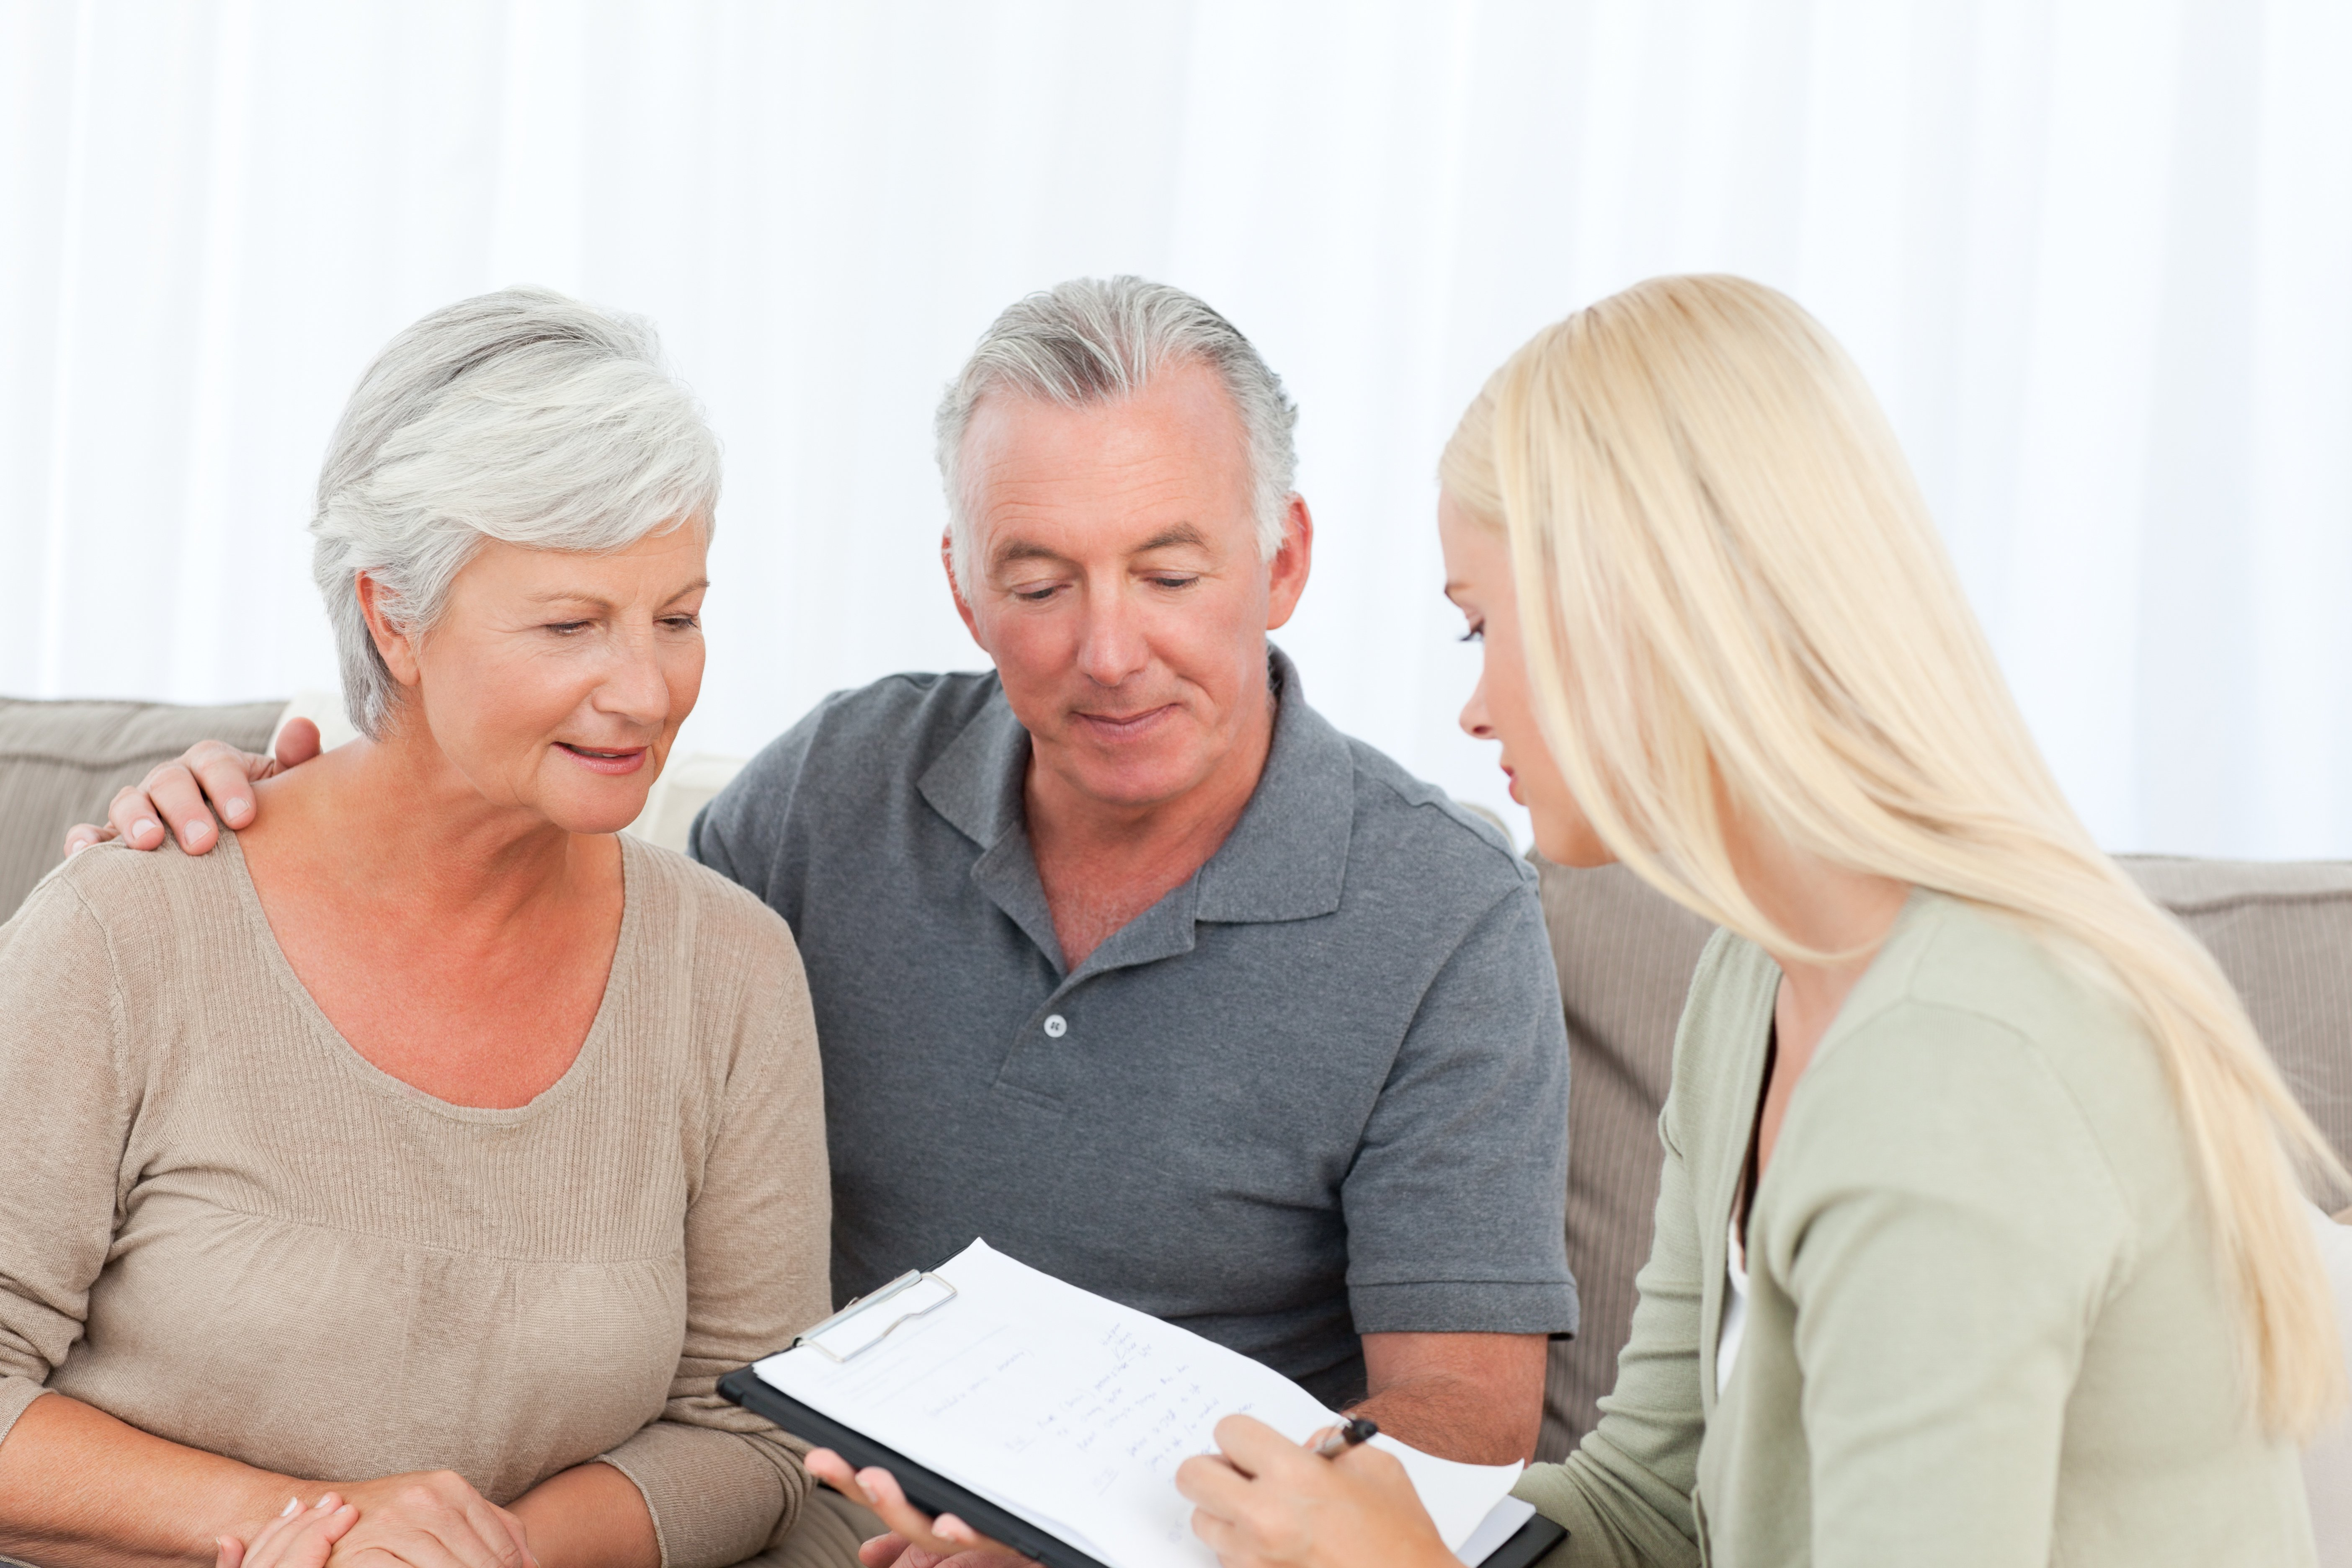 Lawyer explaining paperwork to an older couple